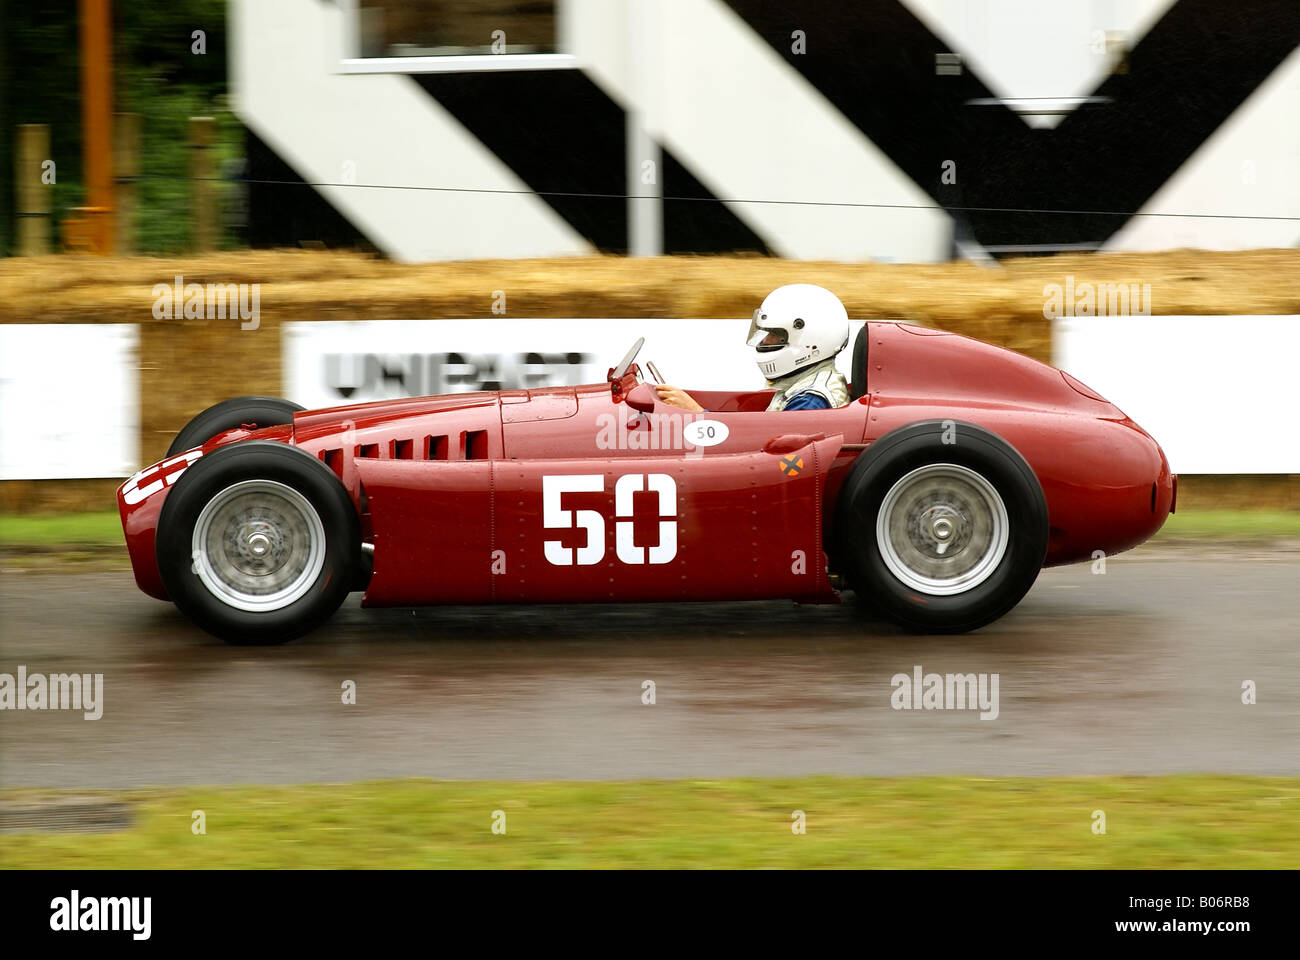 http://c8.alamy.com/comp/B06RB8/a-1954-lancia-d50-formula-one-car-at-the-goodwood-festival-of-speed-B06RB8.jpg